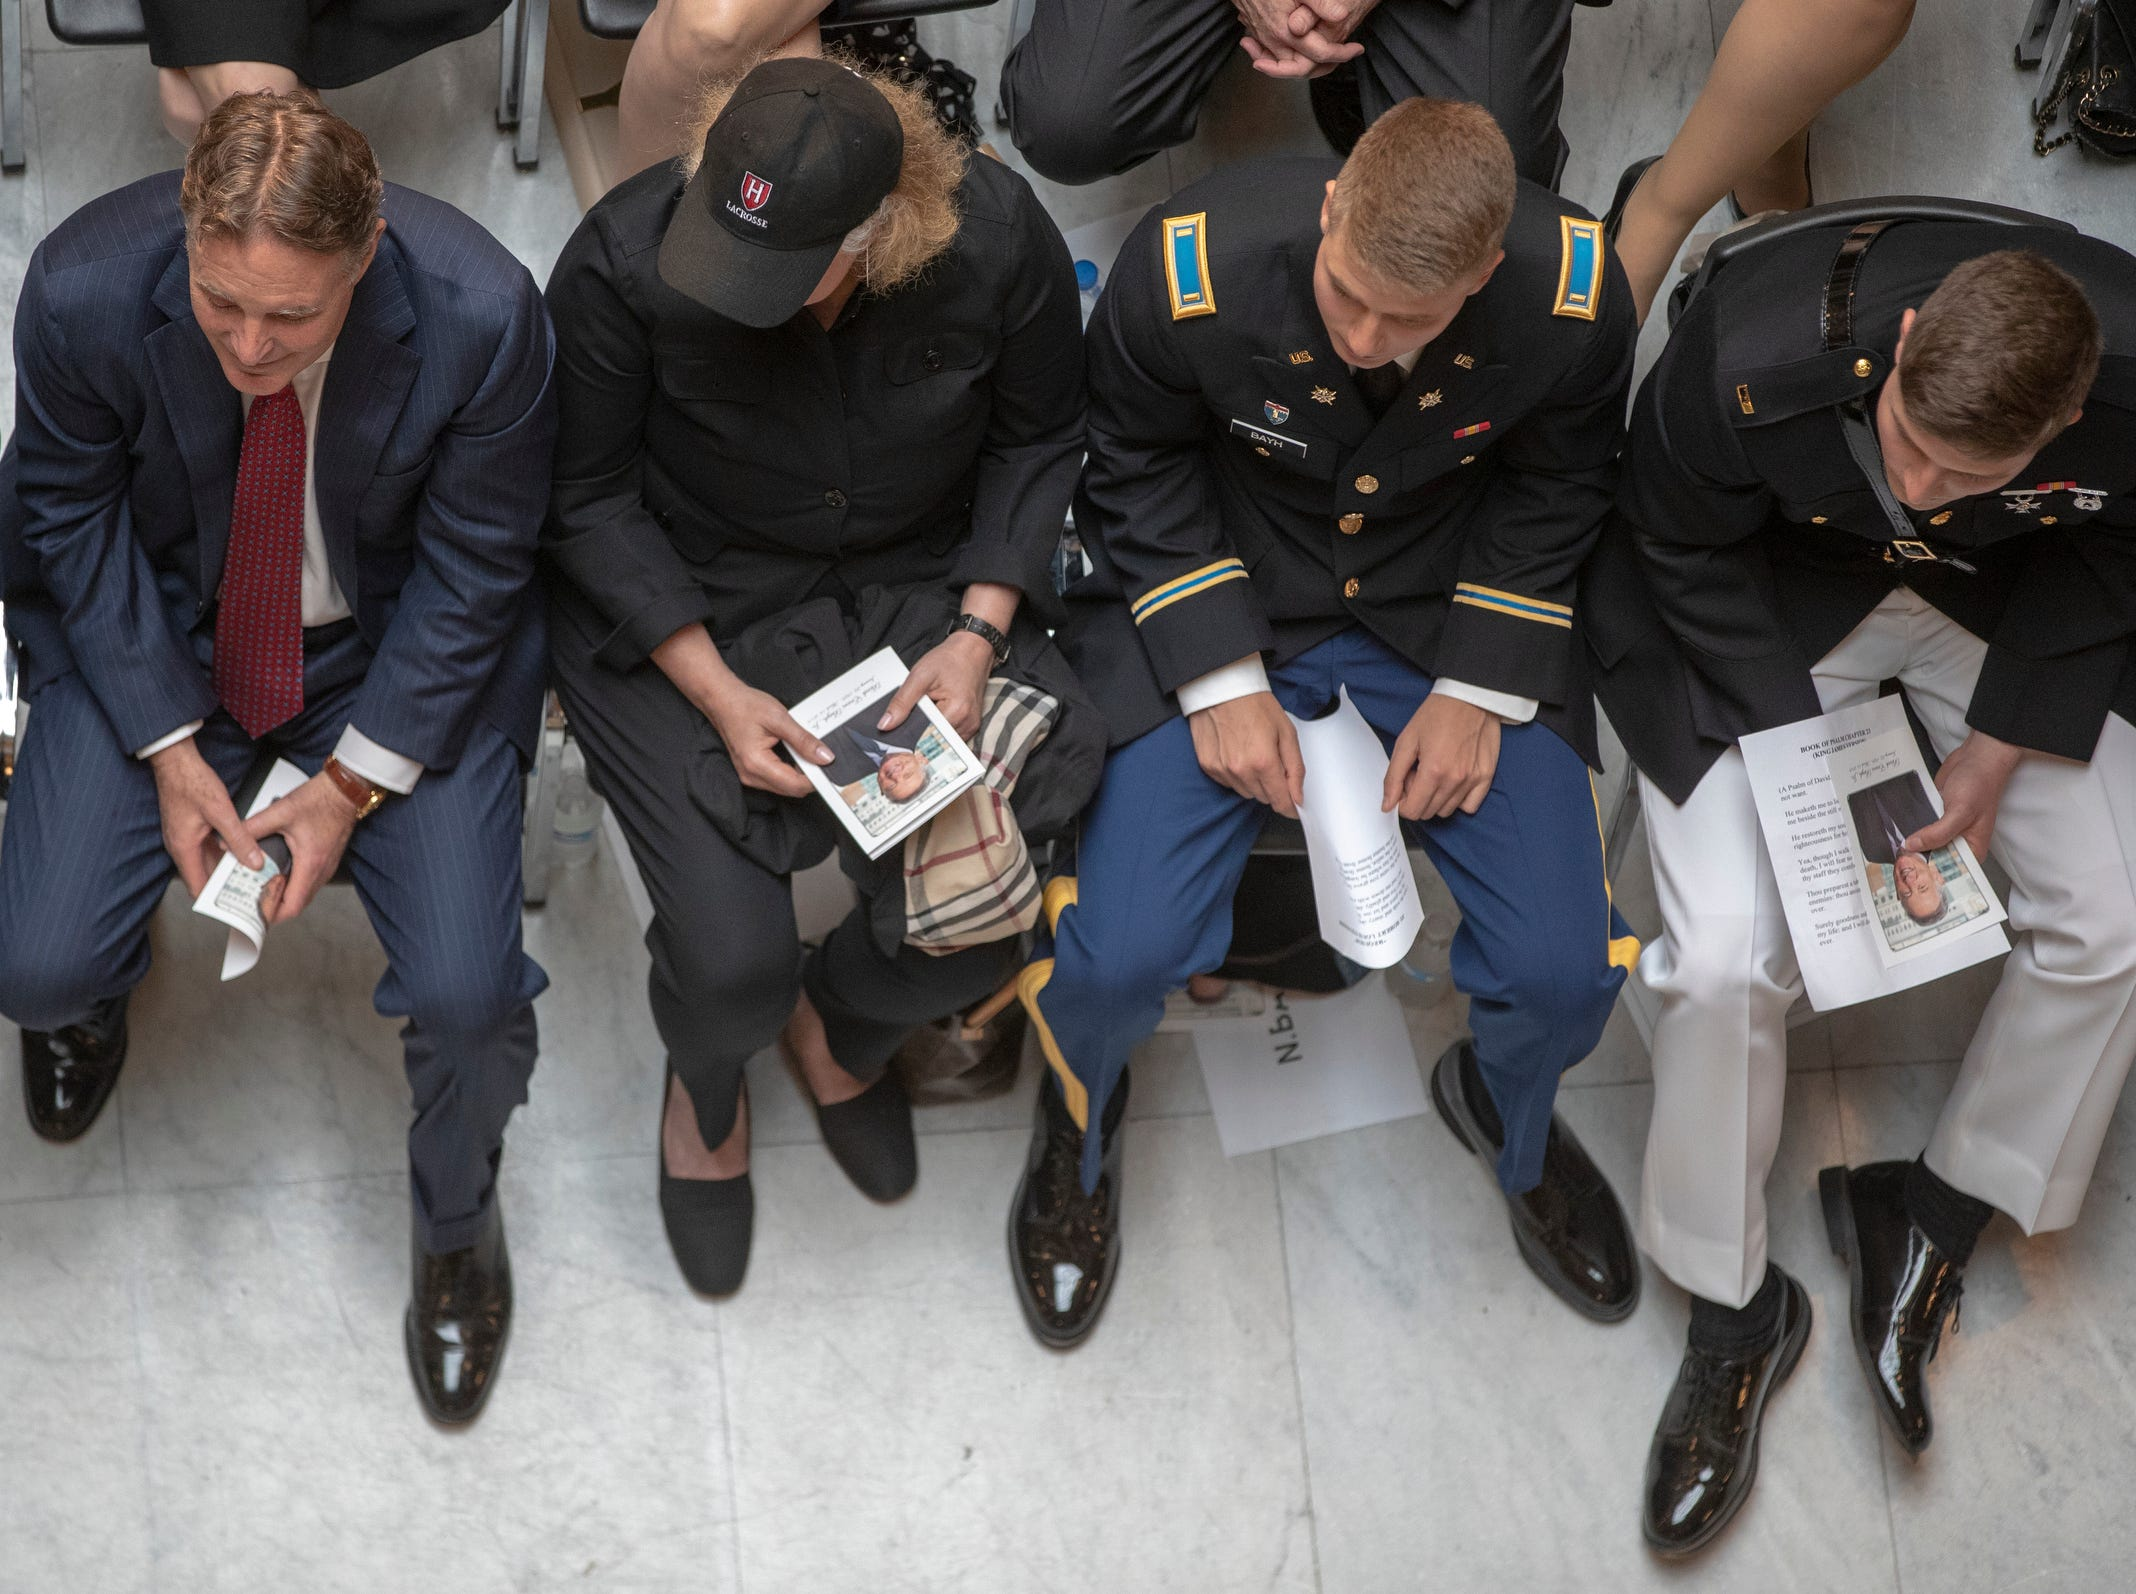 From left, Evan, Susan, Nick, and Beau, attend a service for Indiana's Birch Bayh, who died on March 14, and was a three-term U.S. Senator, Indiana Statehouse, Indianapolis, Wednesday, May 1, 2019.